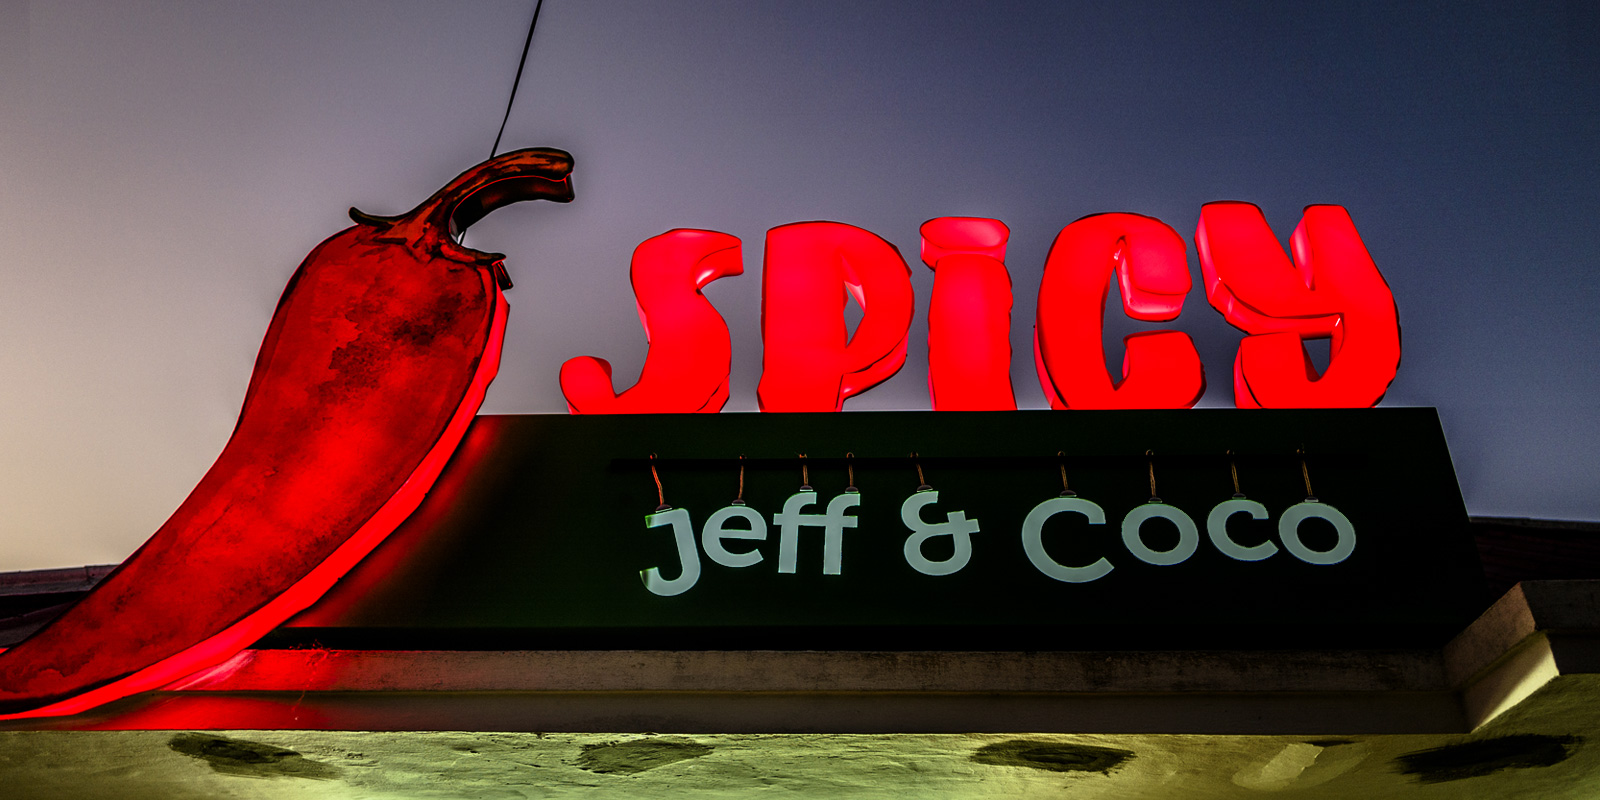 images spicy jeff